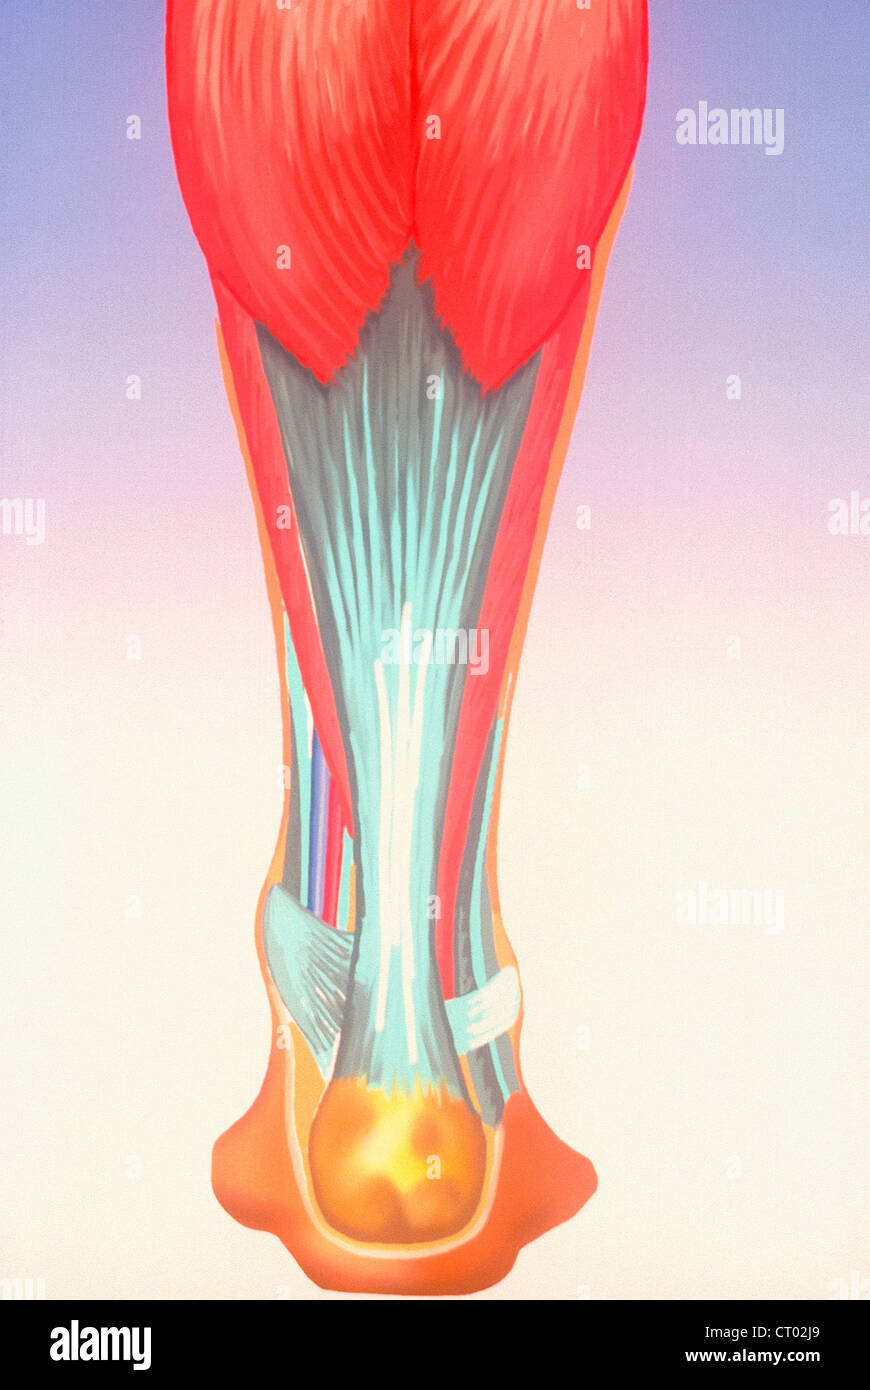 ACHILLE\'S TENDON, DRAWING Stock Photo: 49174561 - Alamy